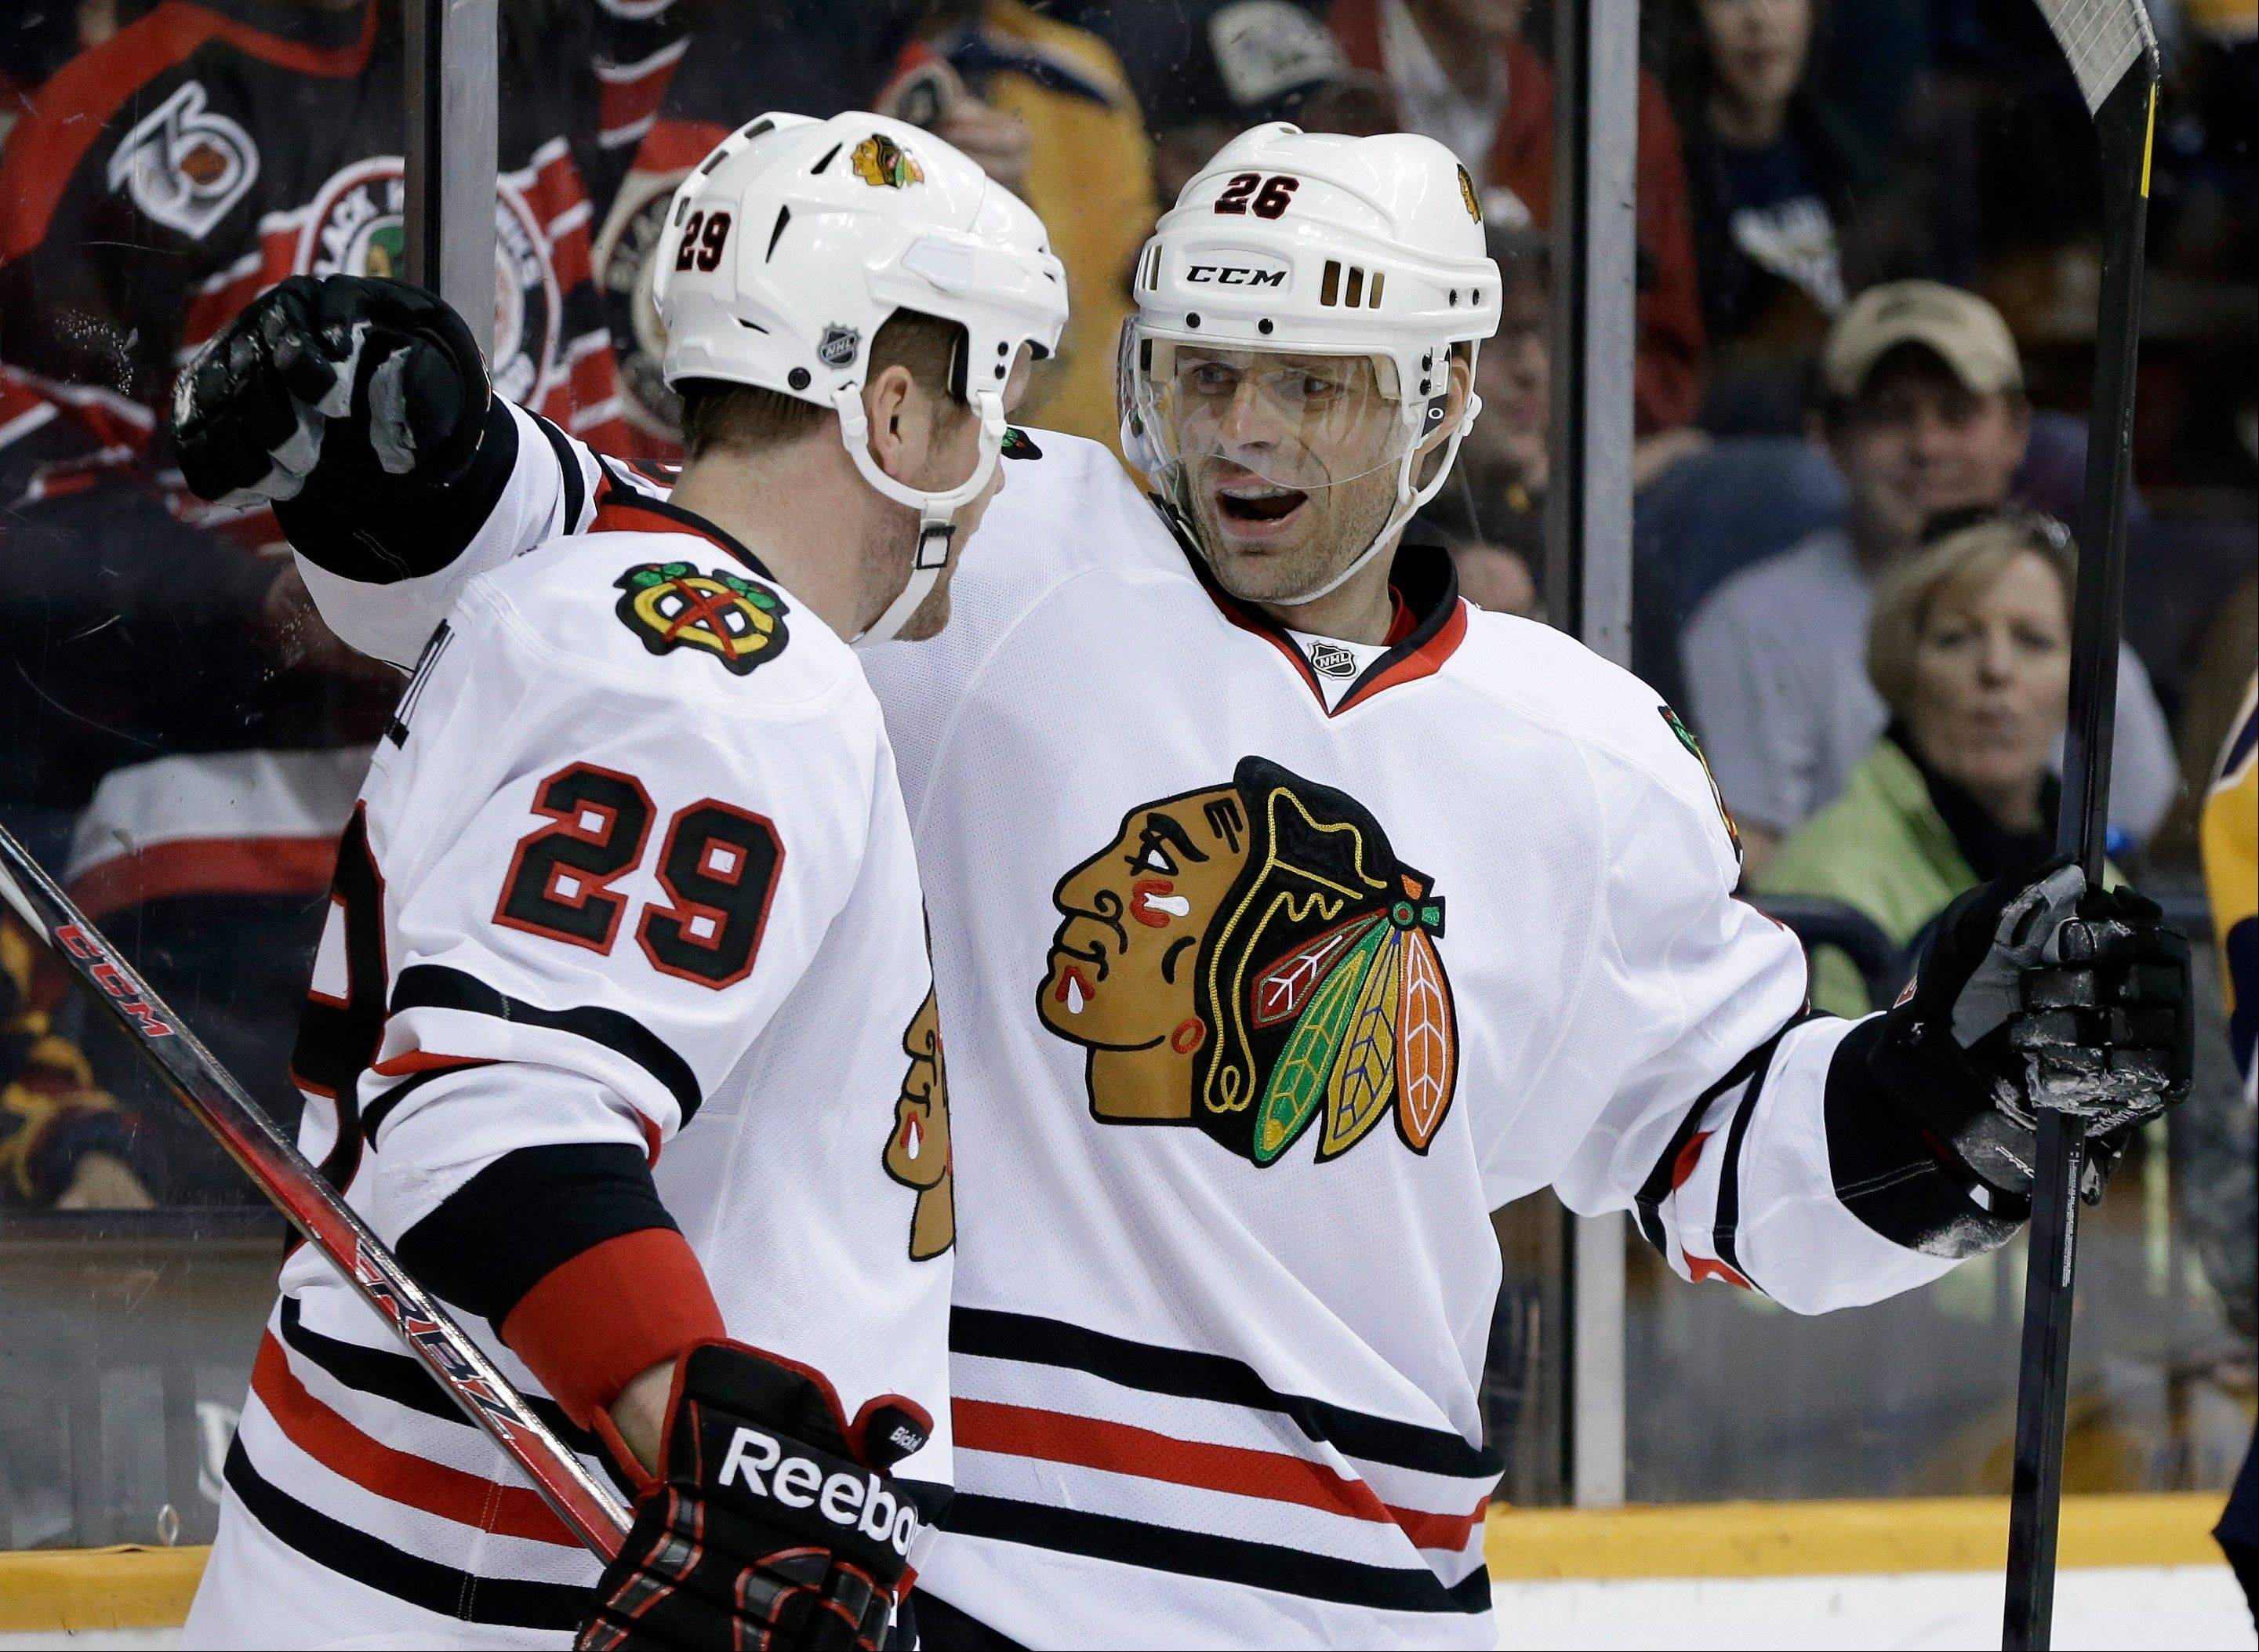 Since joining the Blackhawks, Michal Handzus, right, is a plus-7 with 1 goal and 5 assists. He'll center the second line with Patrick Kane and Patrick Sharp, who also played with him in Philadelphia years ago.